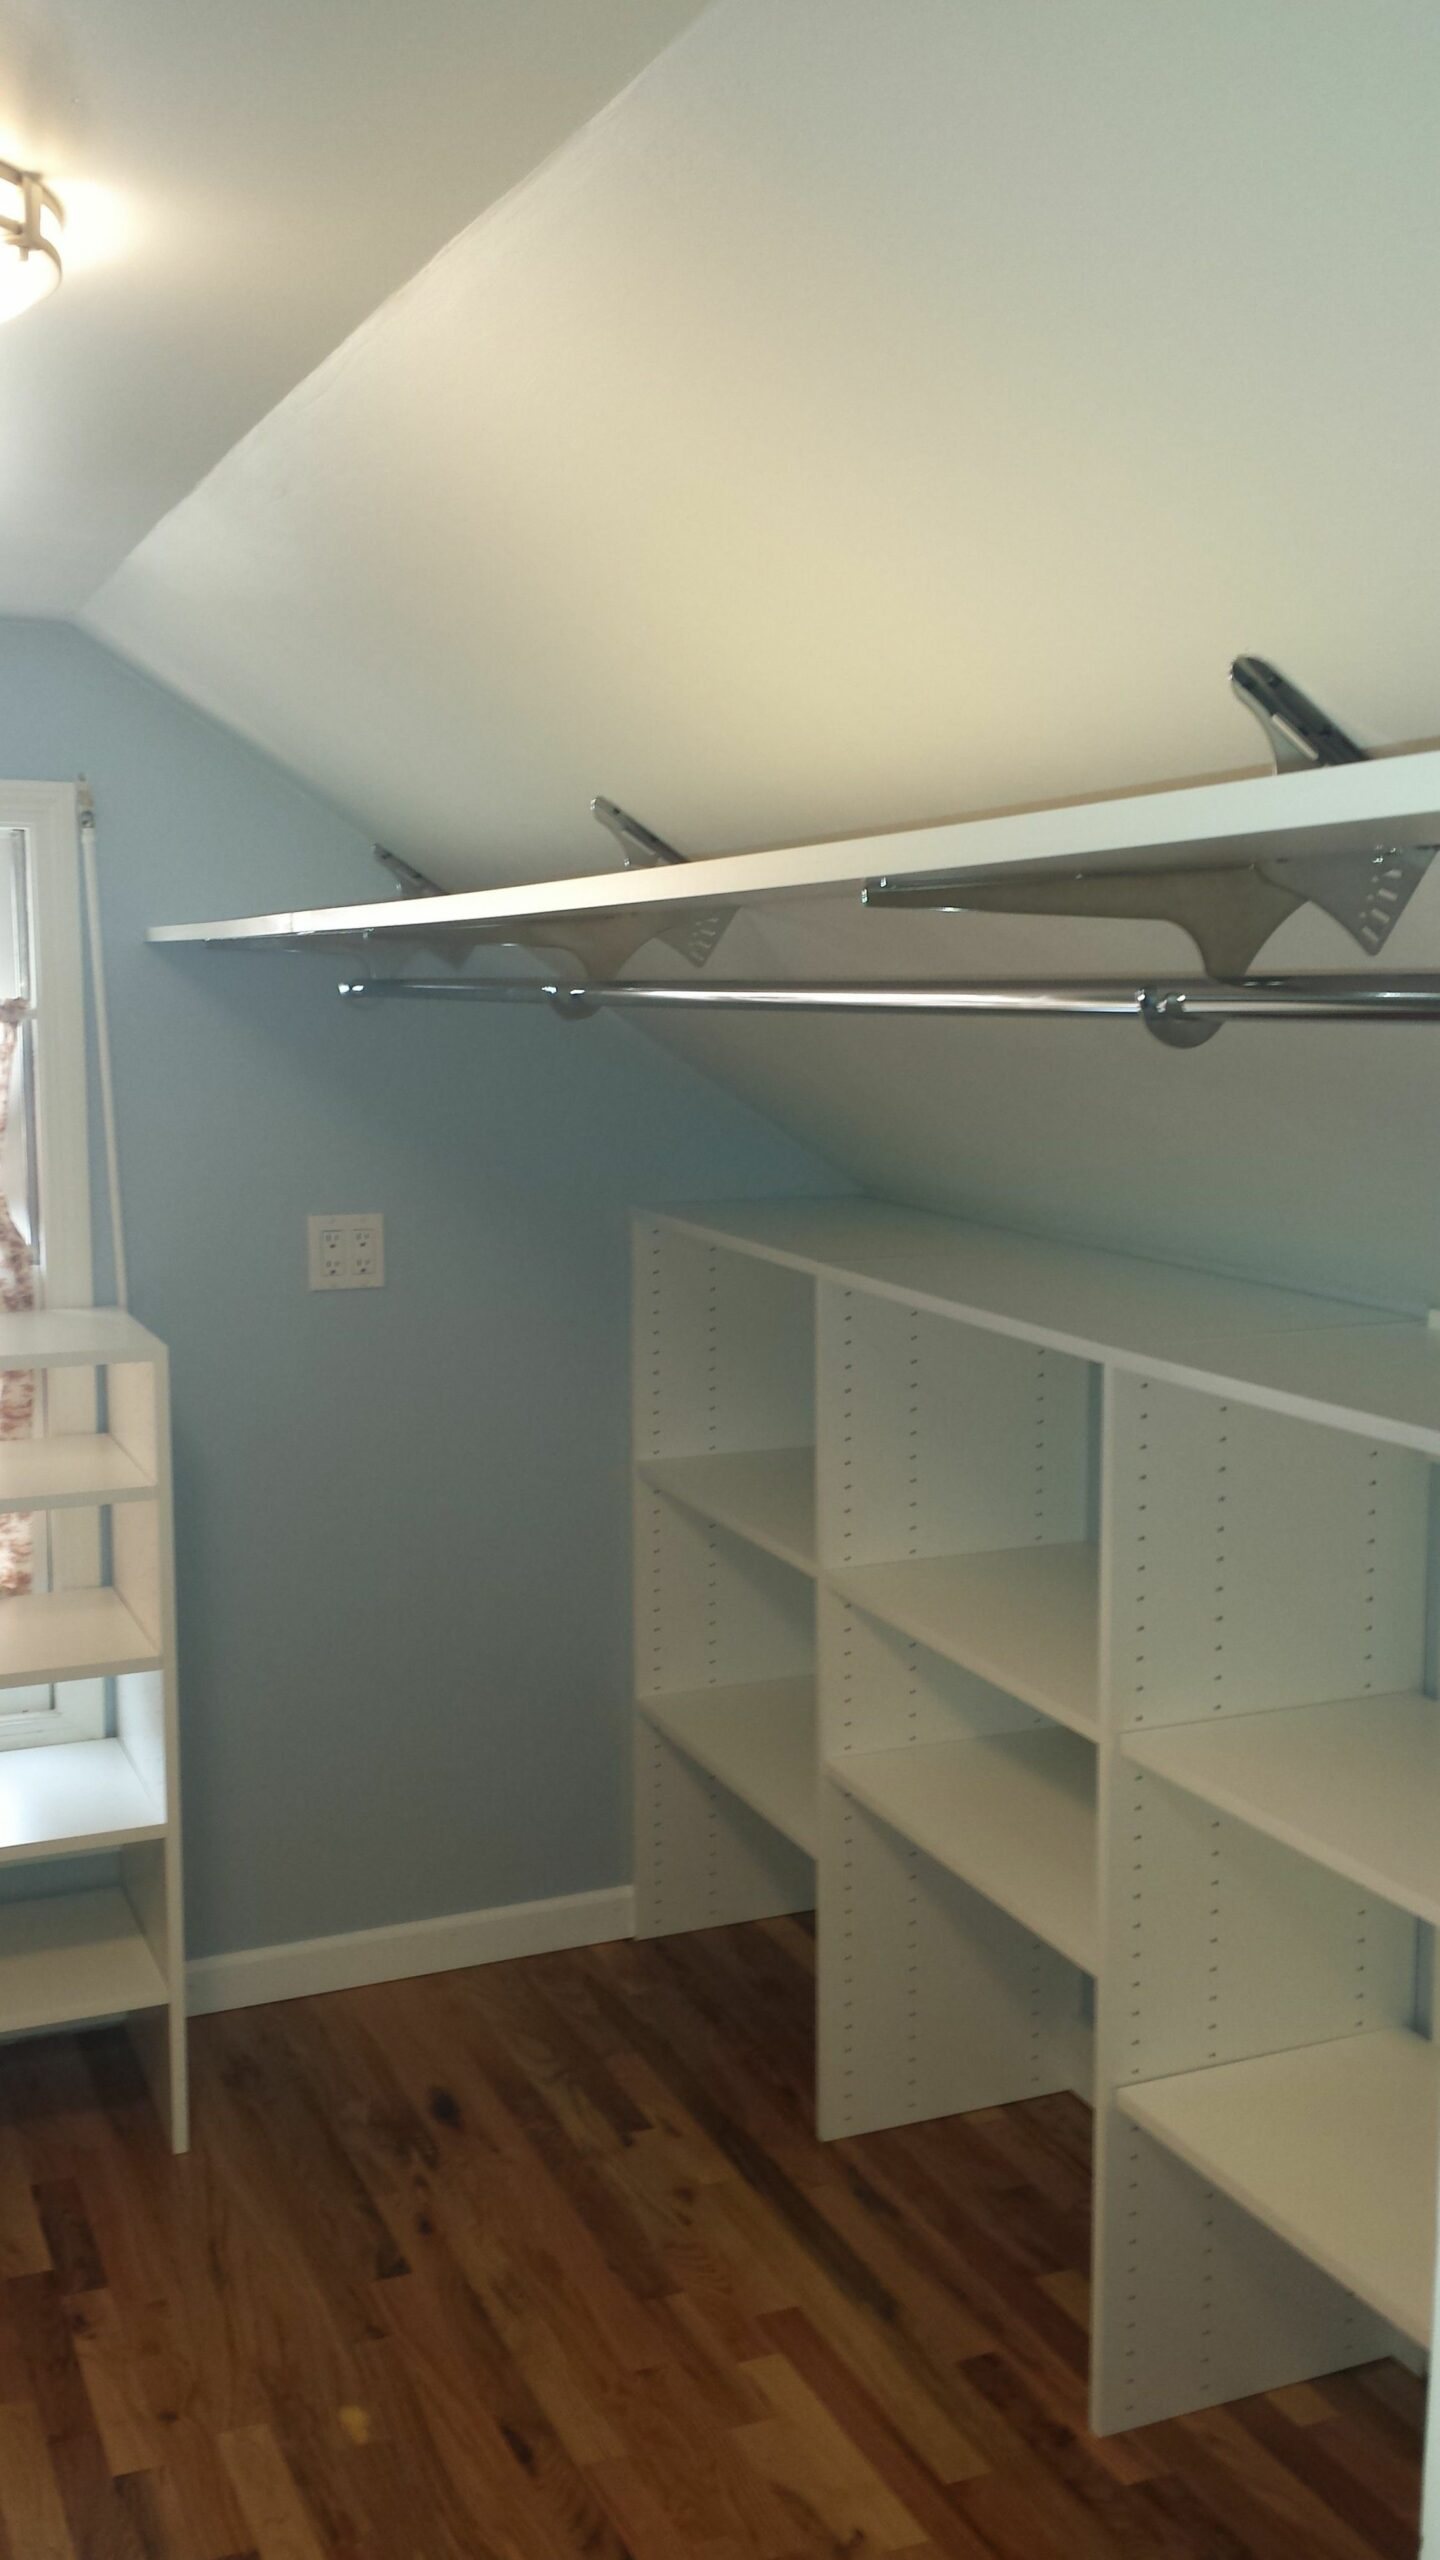 10 Best Upstairs Sloped Ceiling Closets images | Attic rooms ..